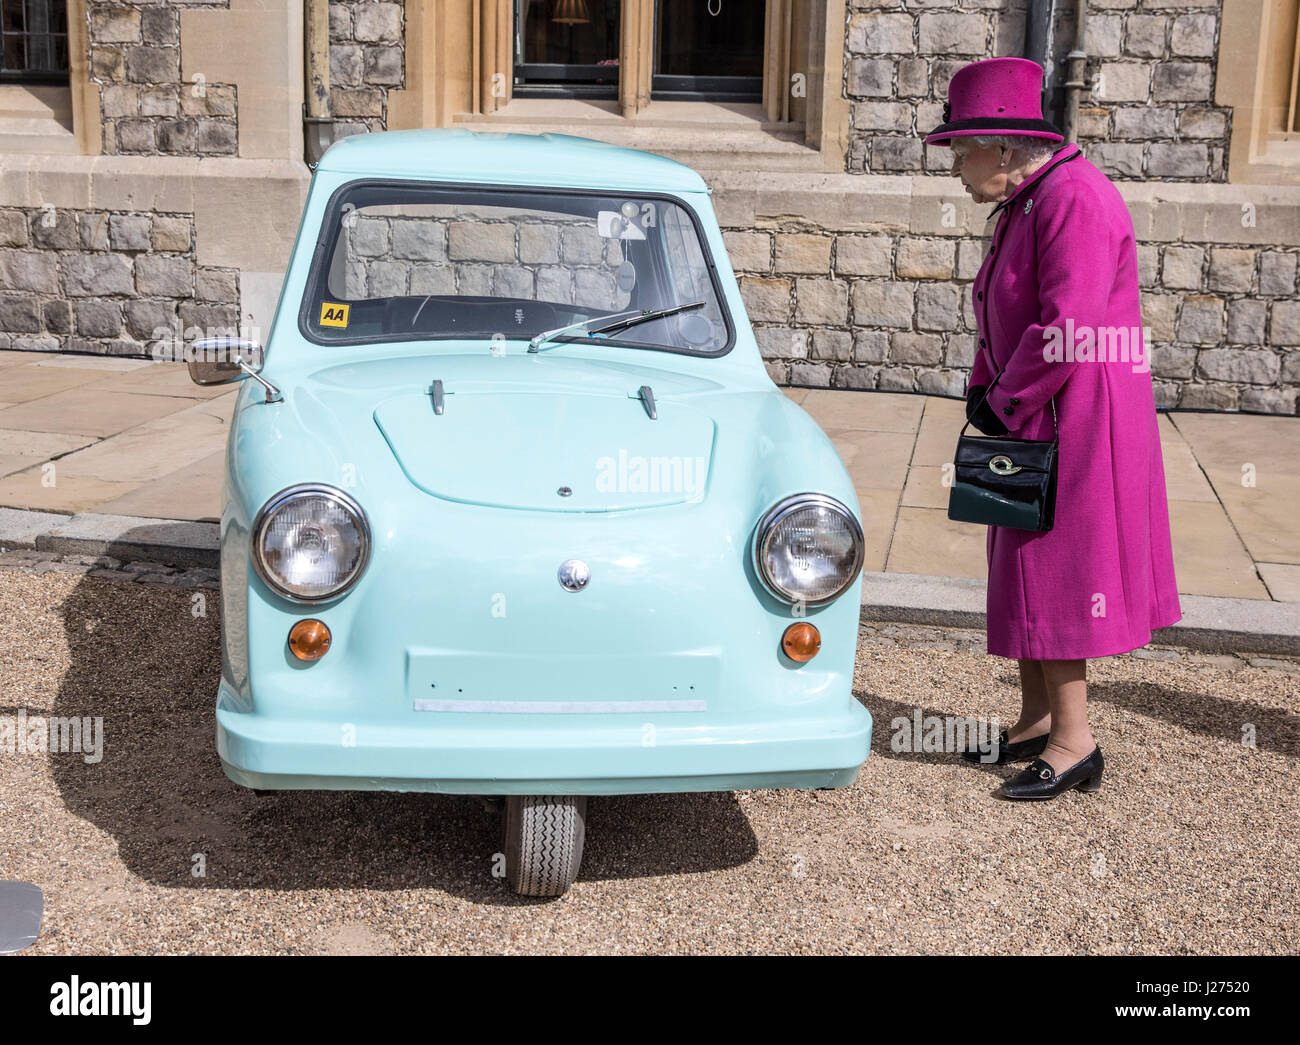 Queen Elizabeth Ii Stands Next To A Classic Invacar Invalid Carriage